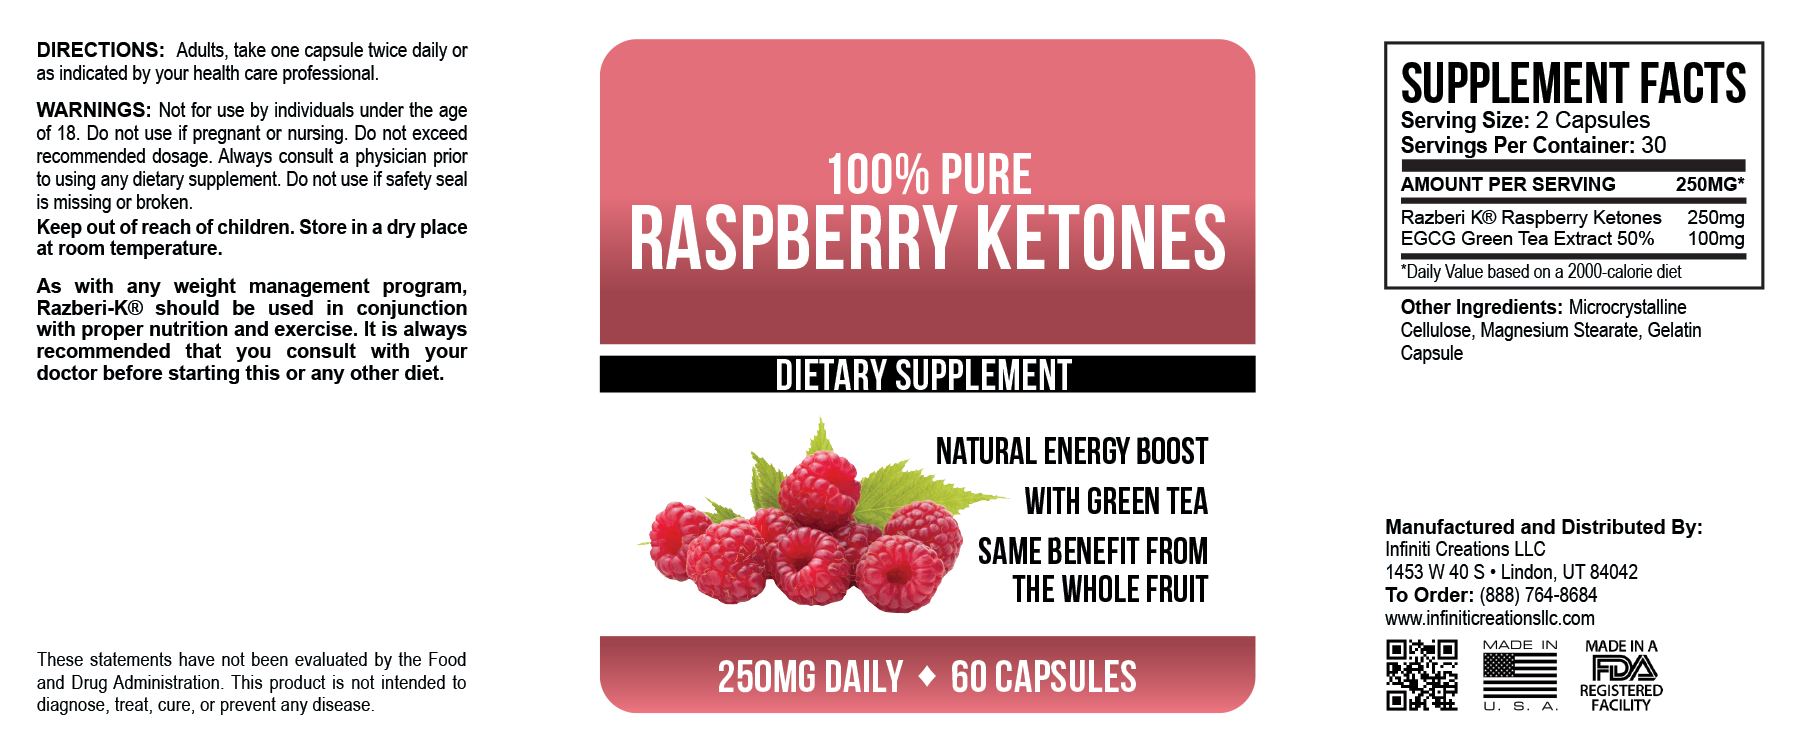 infiniti-creations-raspberry-ketones-label.png